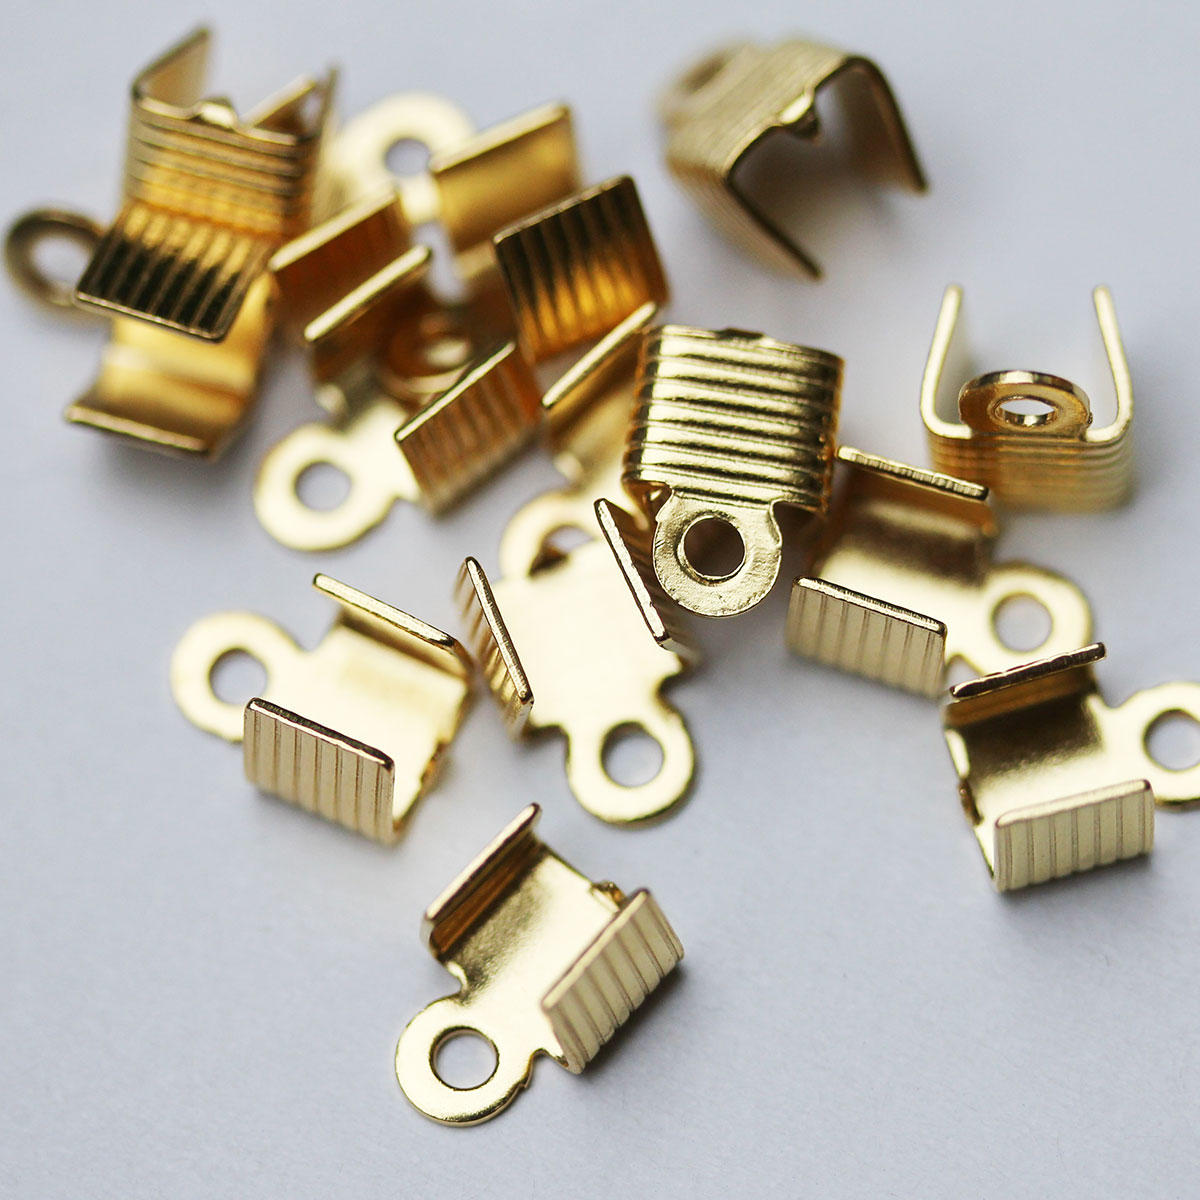 Gold Strong Square Folding Crimp